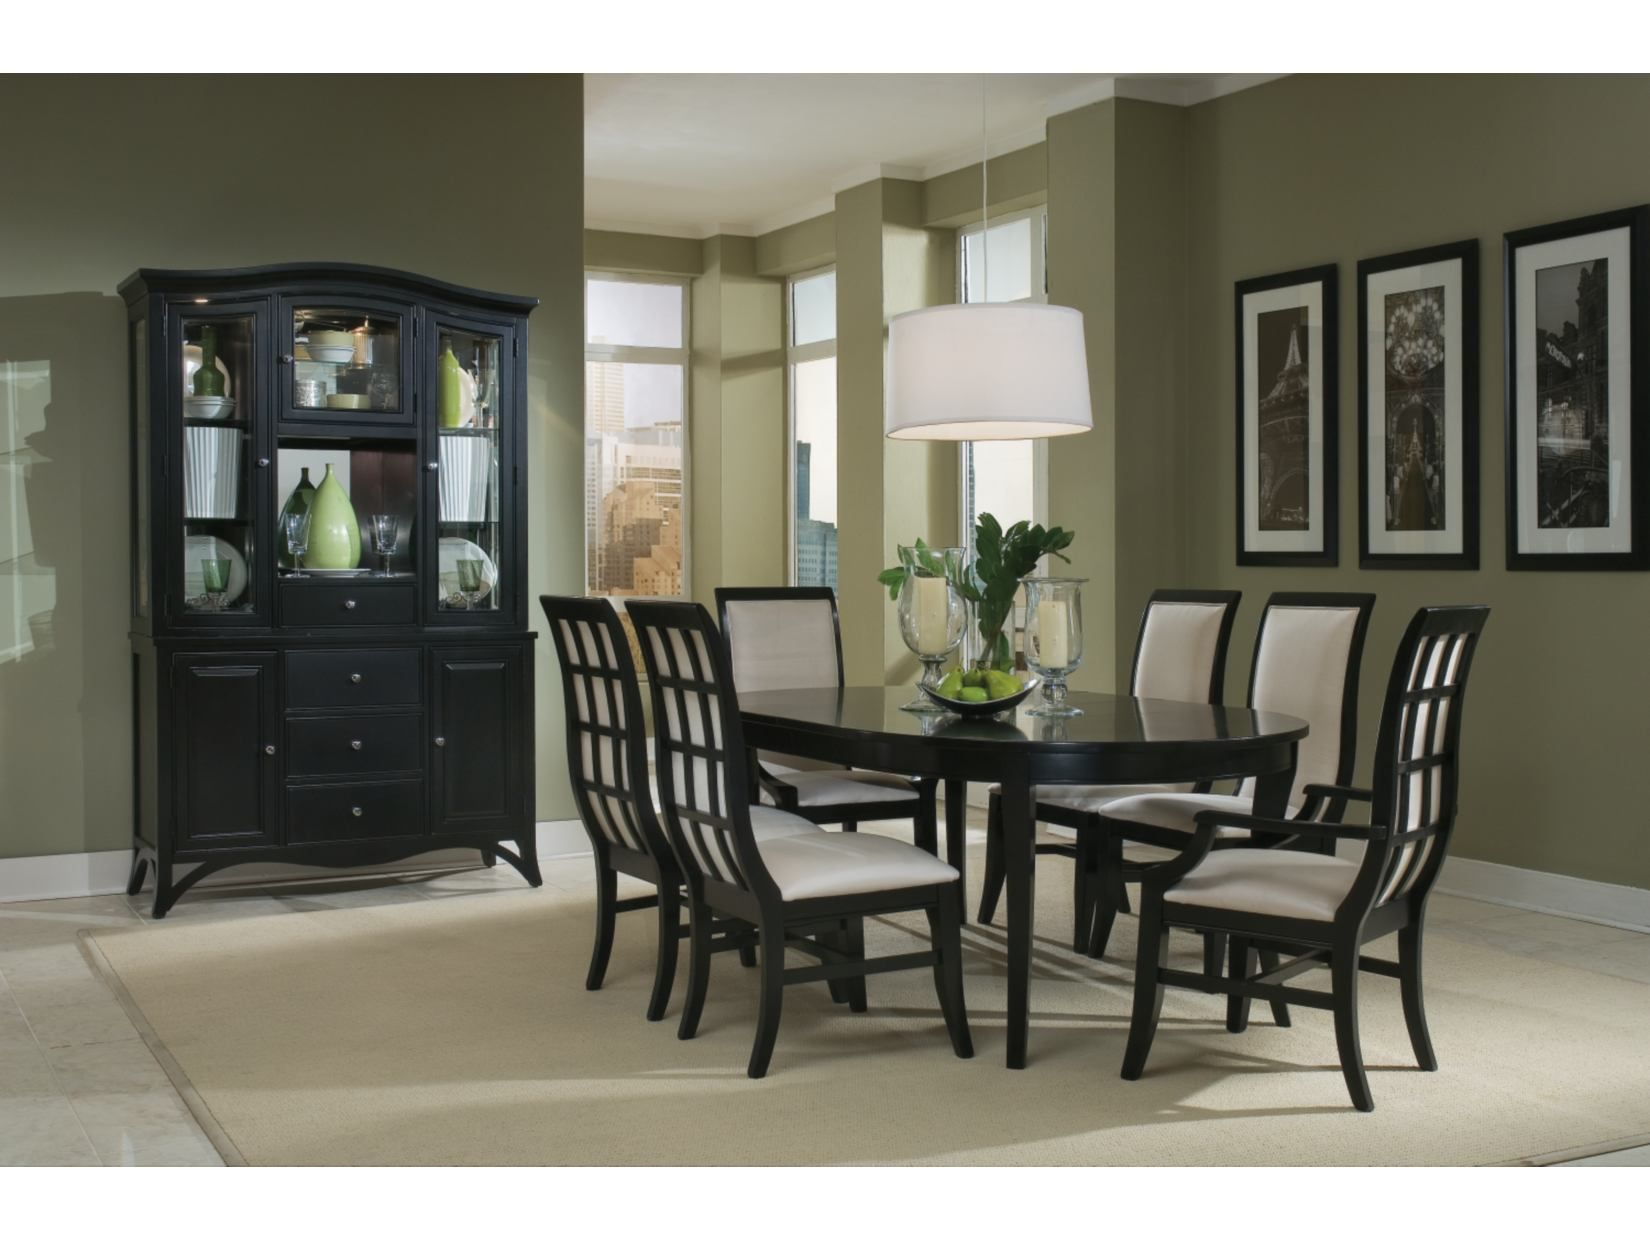 Exceptional Studio One Black 5 PC Round Table Dining Set   American Signature Furniture